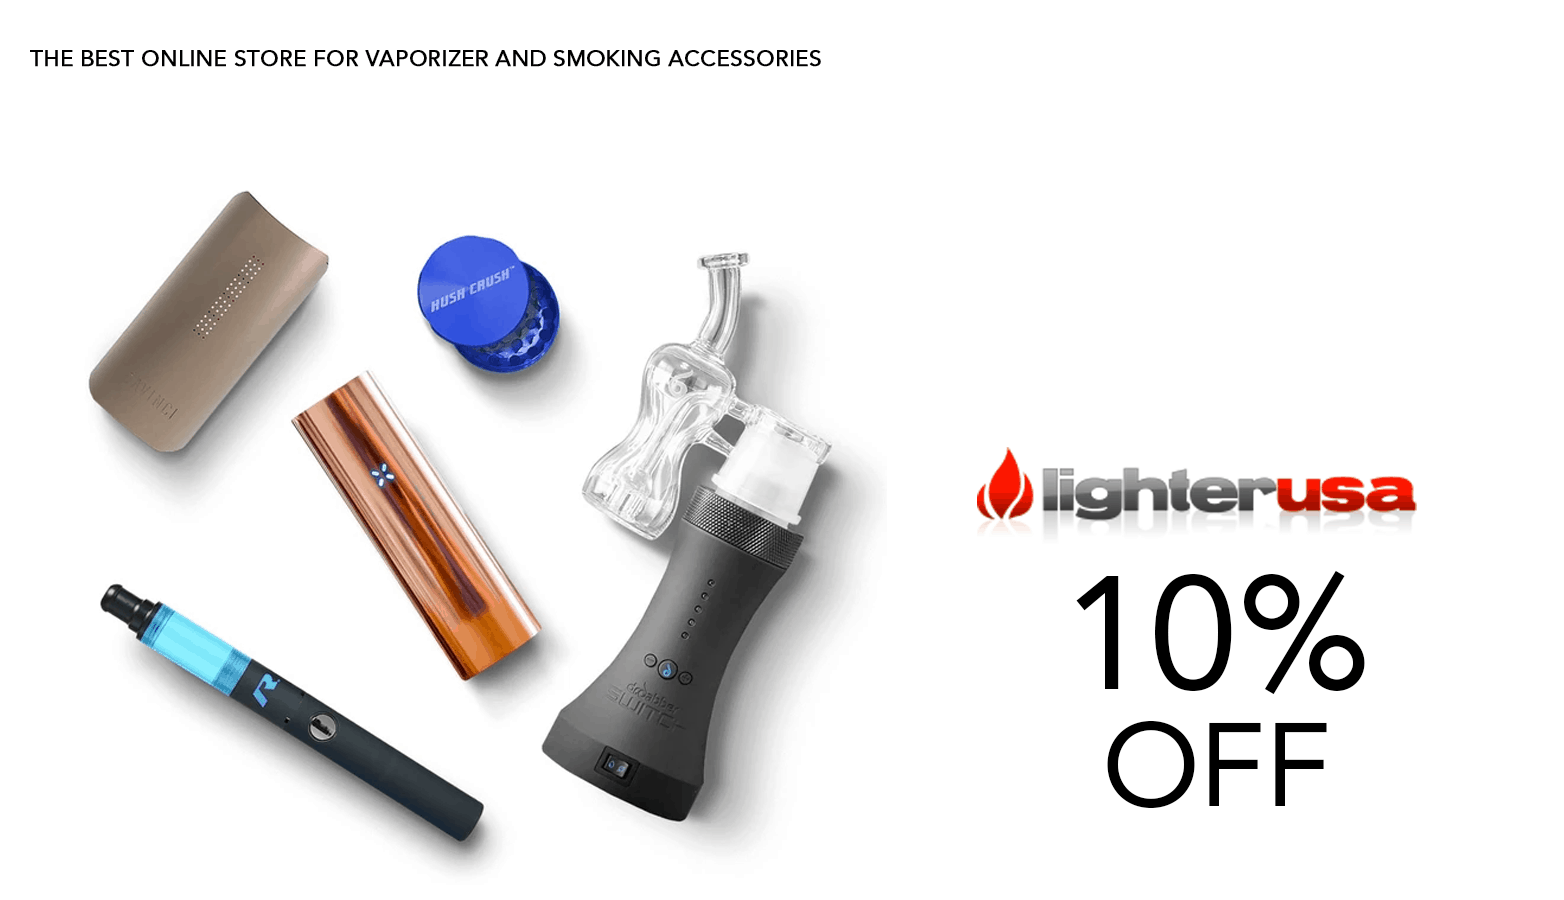 Lighter USA Vapes Coupon Code Offer Website